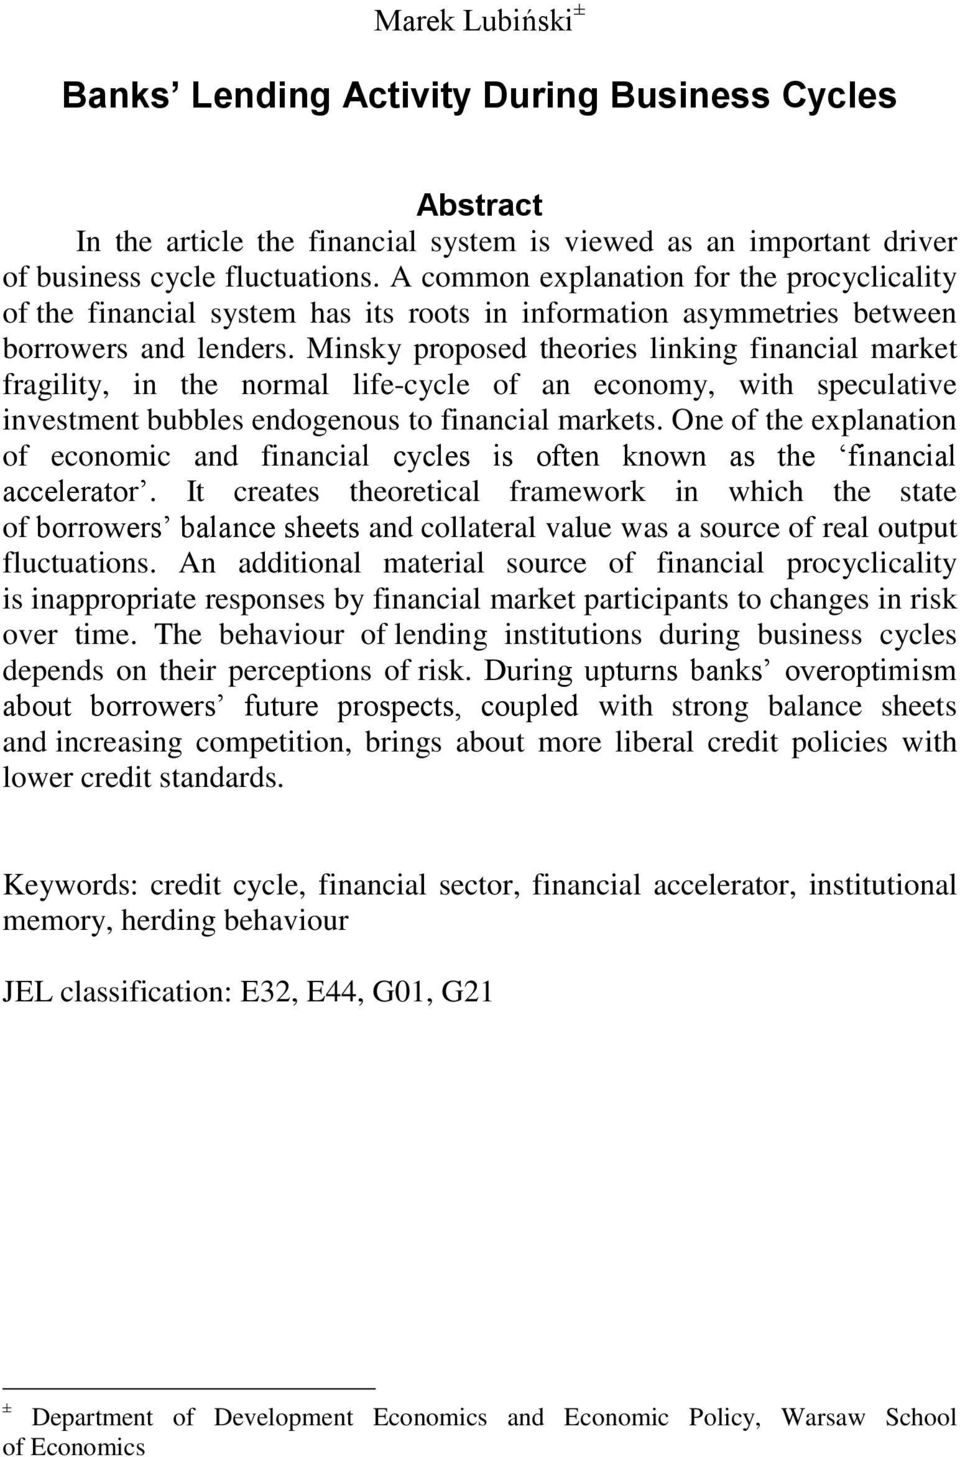 Minsky proposed theories linking financial market fragility, in the normal life-cycle of an economy, with speculative investment bubbles endogenous to financial markets.